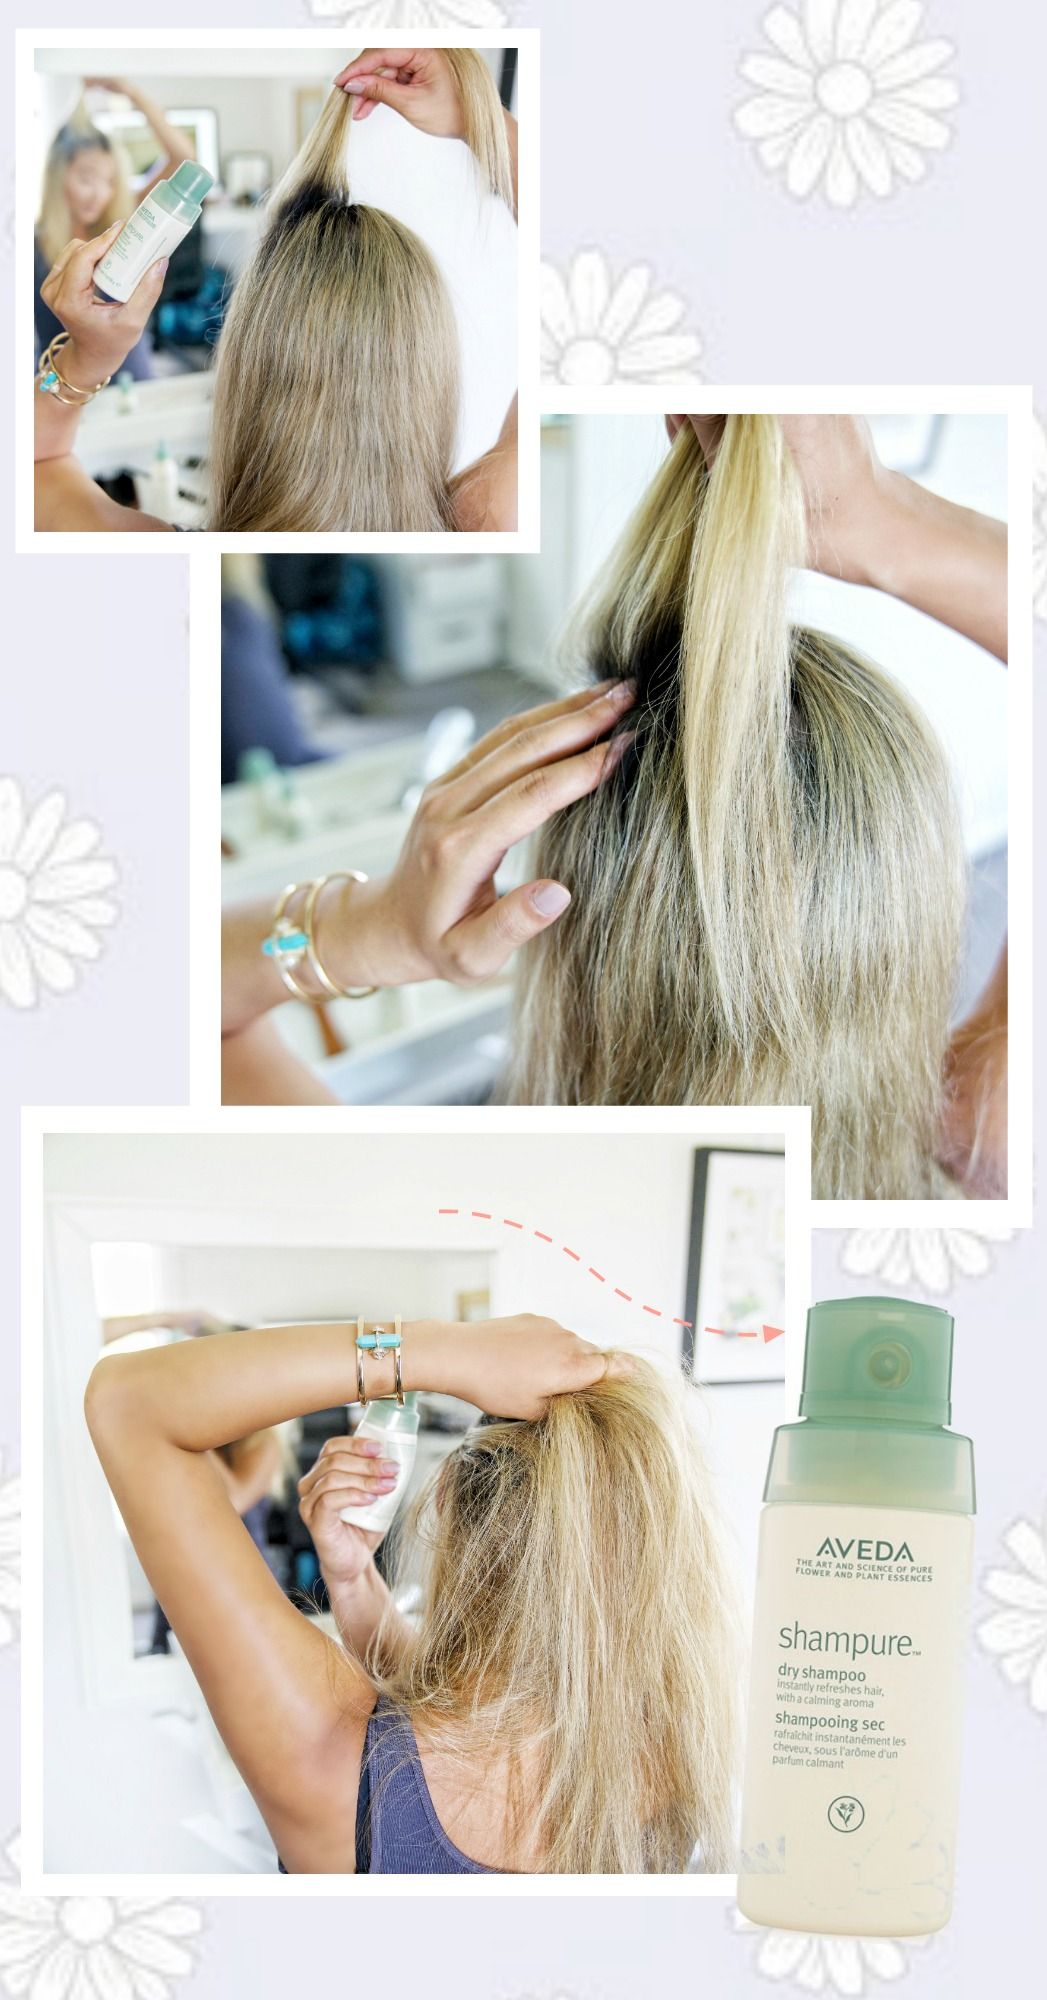 How To Aveda Dry Shampoo